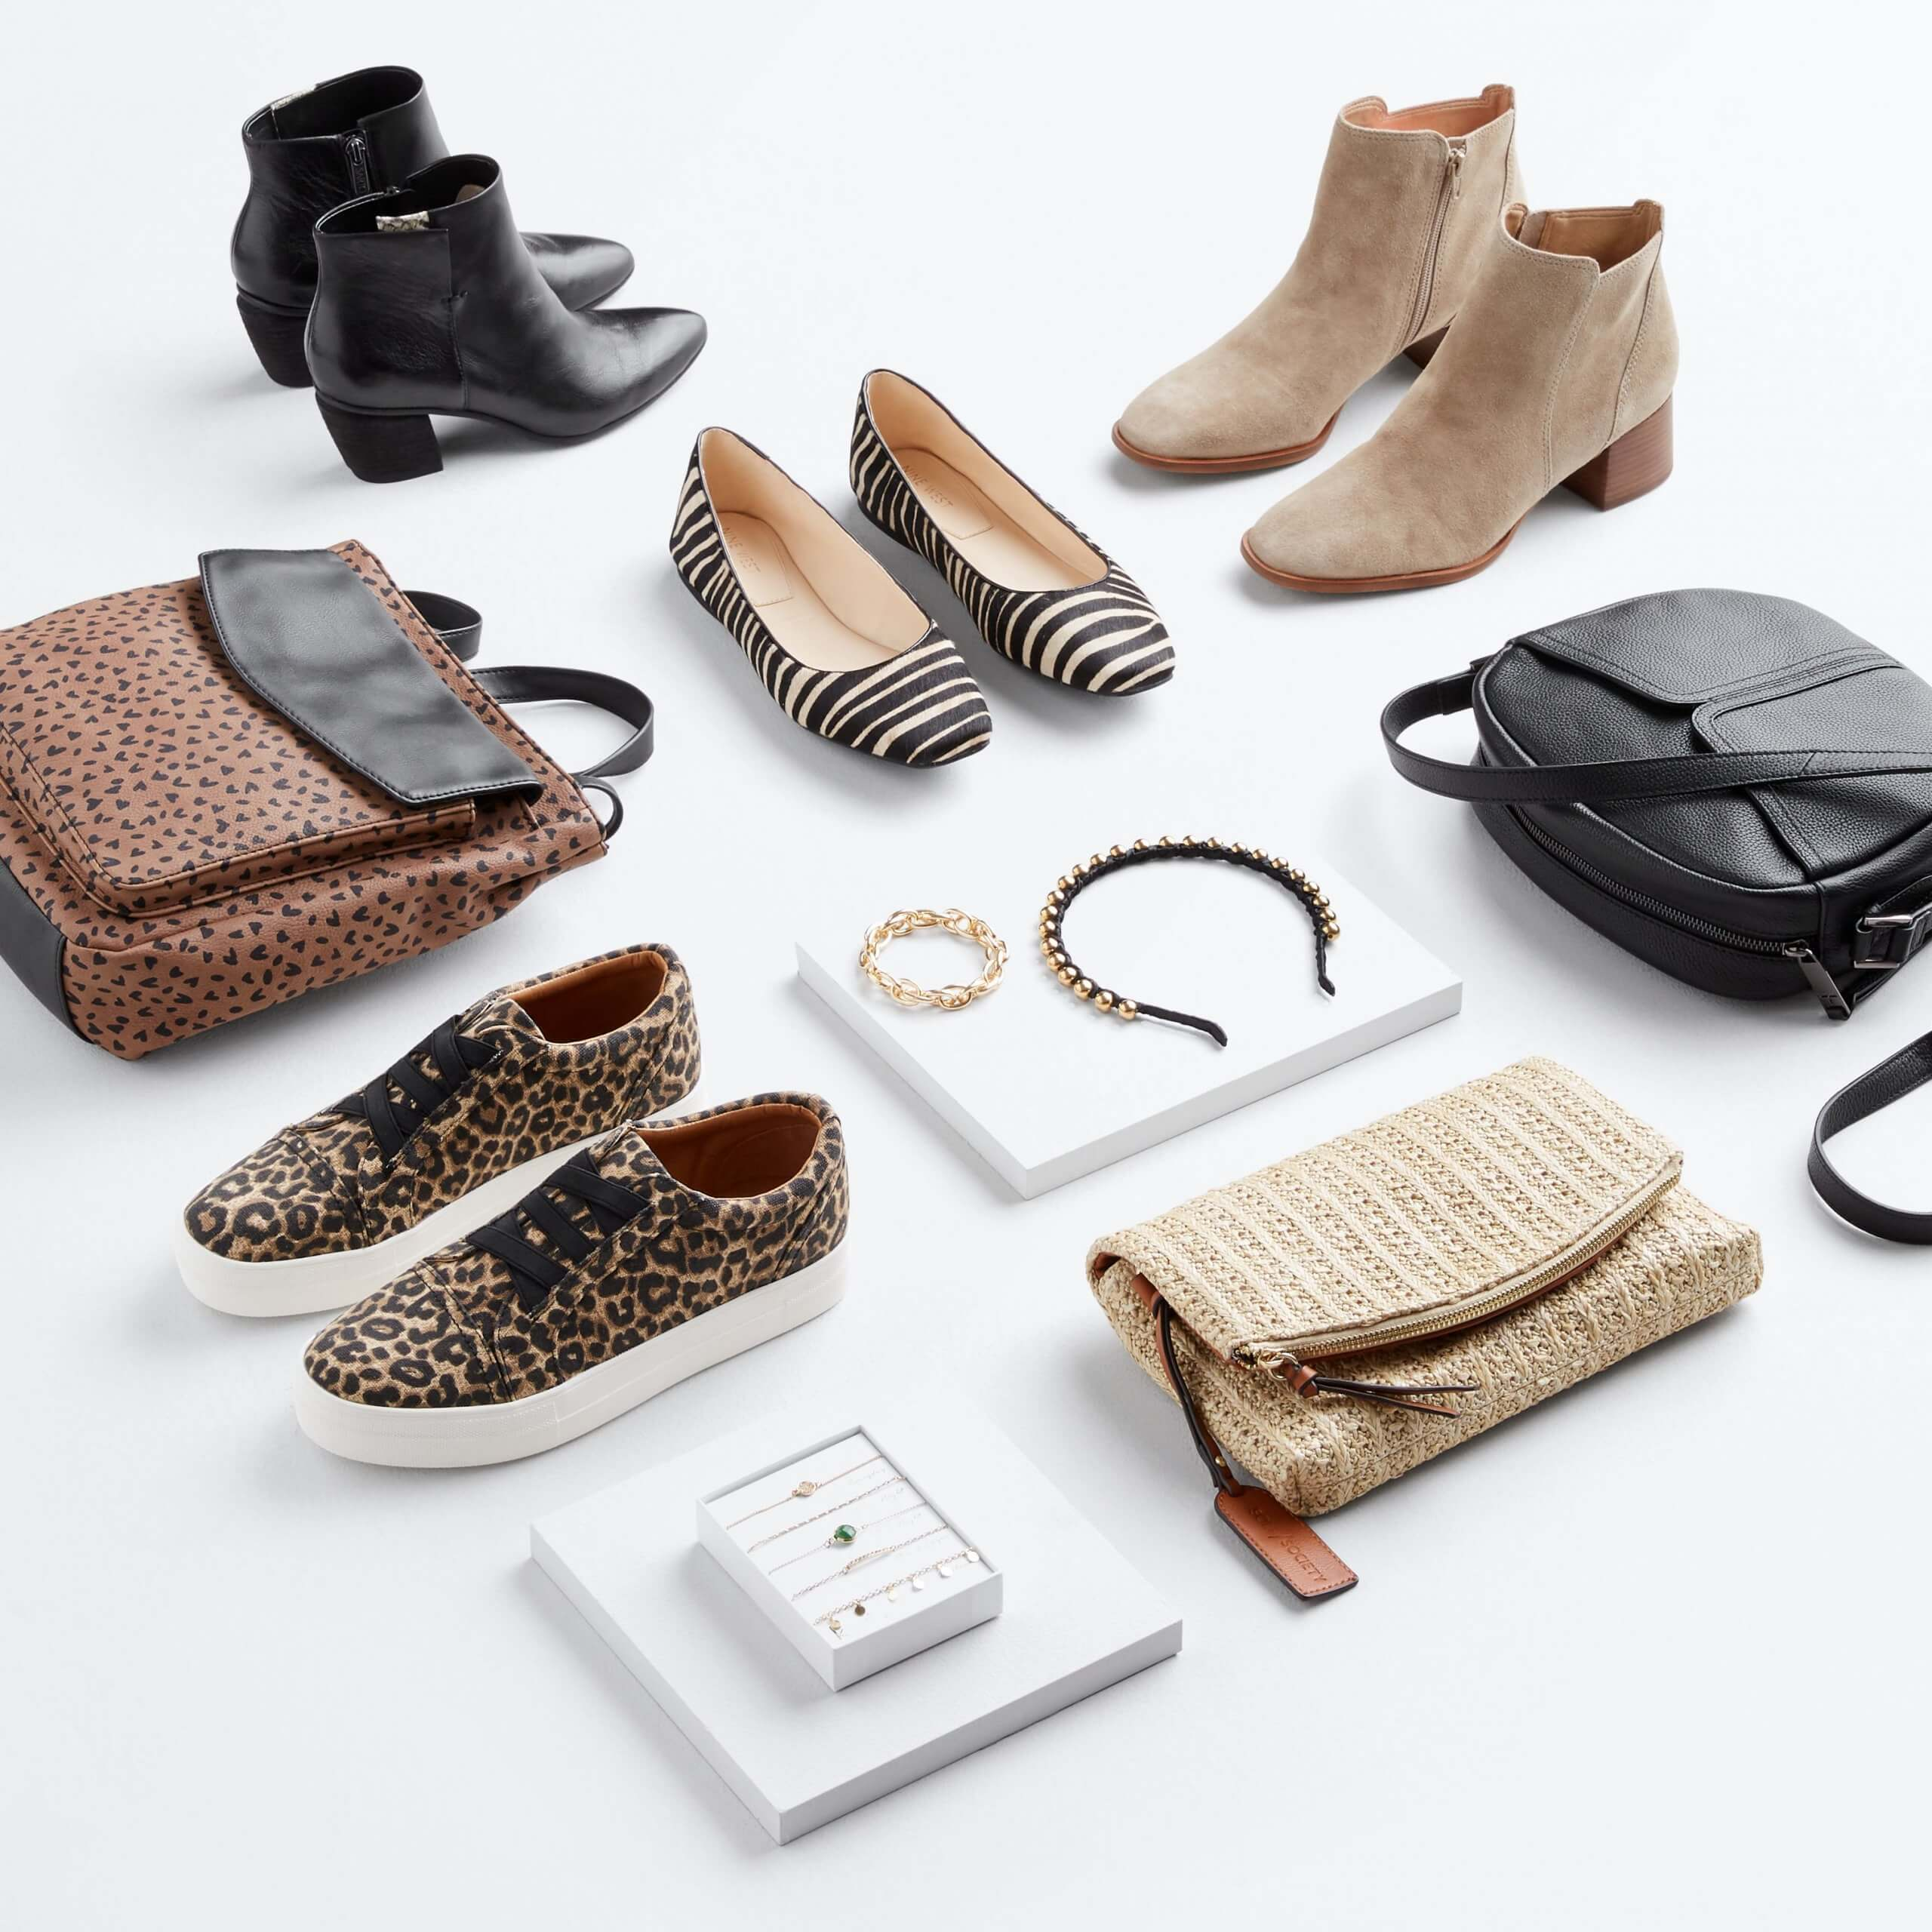 Stitch Fix Women's laydown featuring black heeled booties, black striped flats, tan heeled booties, black purse, tan clutch, animal print sneakers and animal print purse on the floor with black headband and gold bracelets on white blocks.